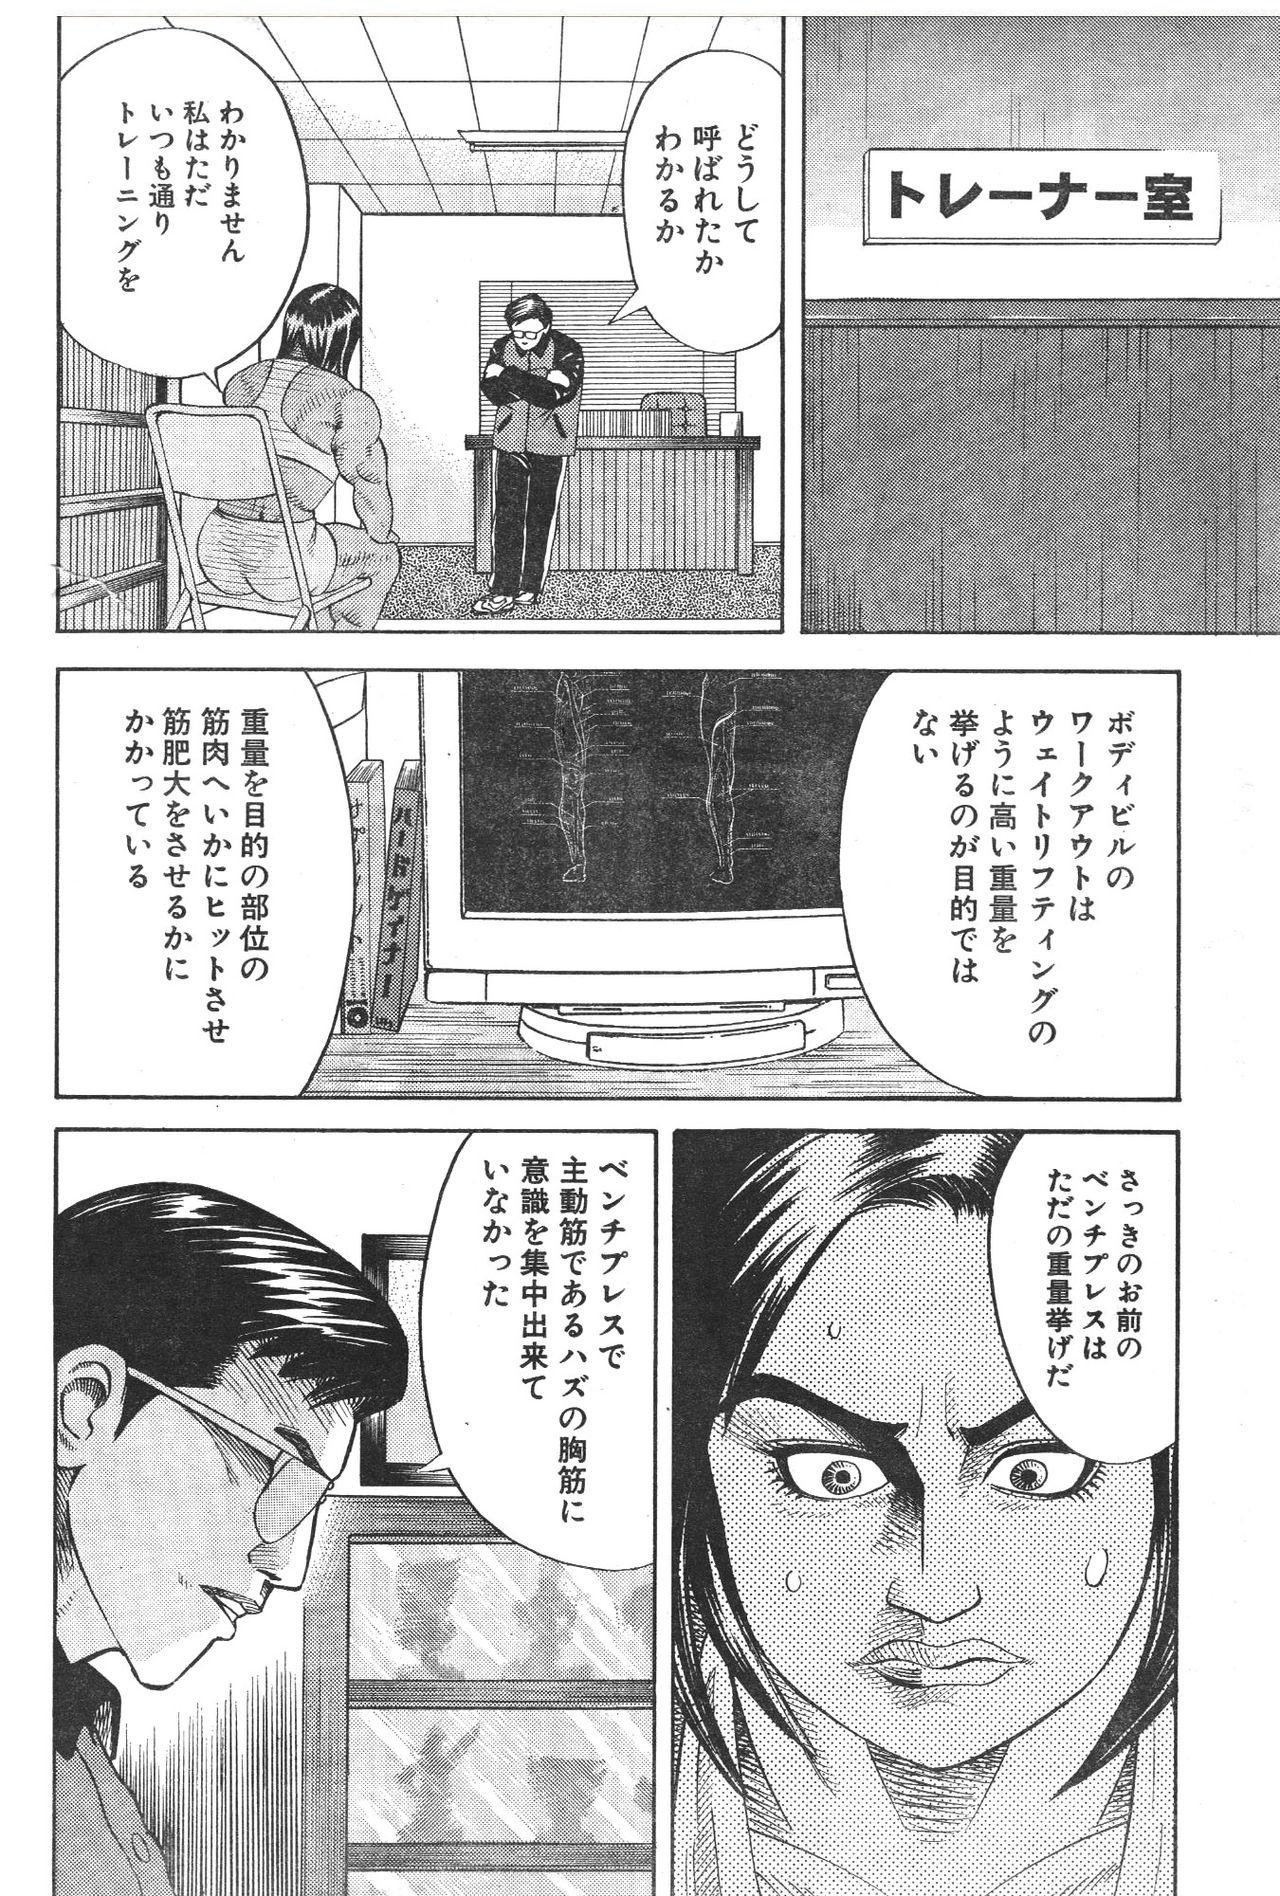 Muscle Strawberry Chapter 1 17